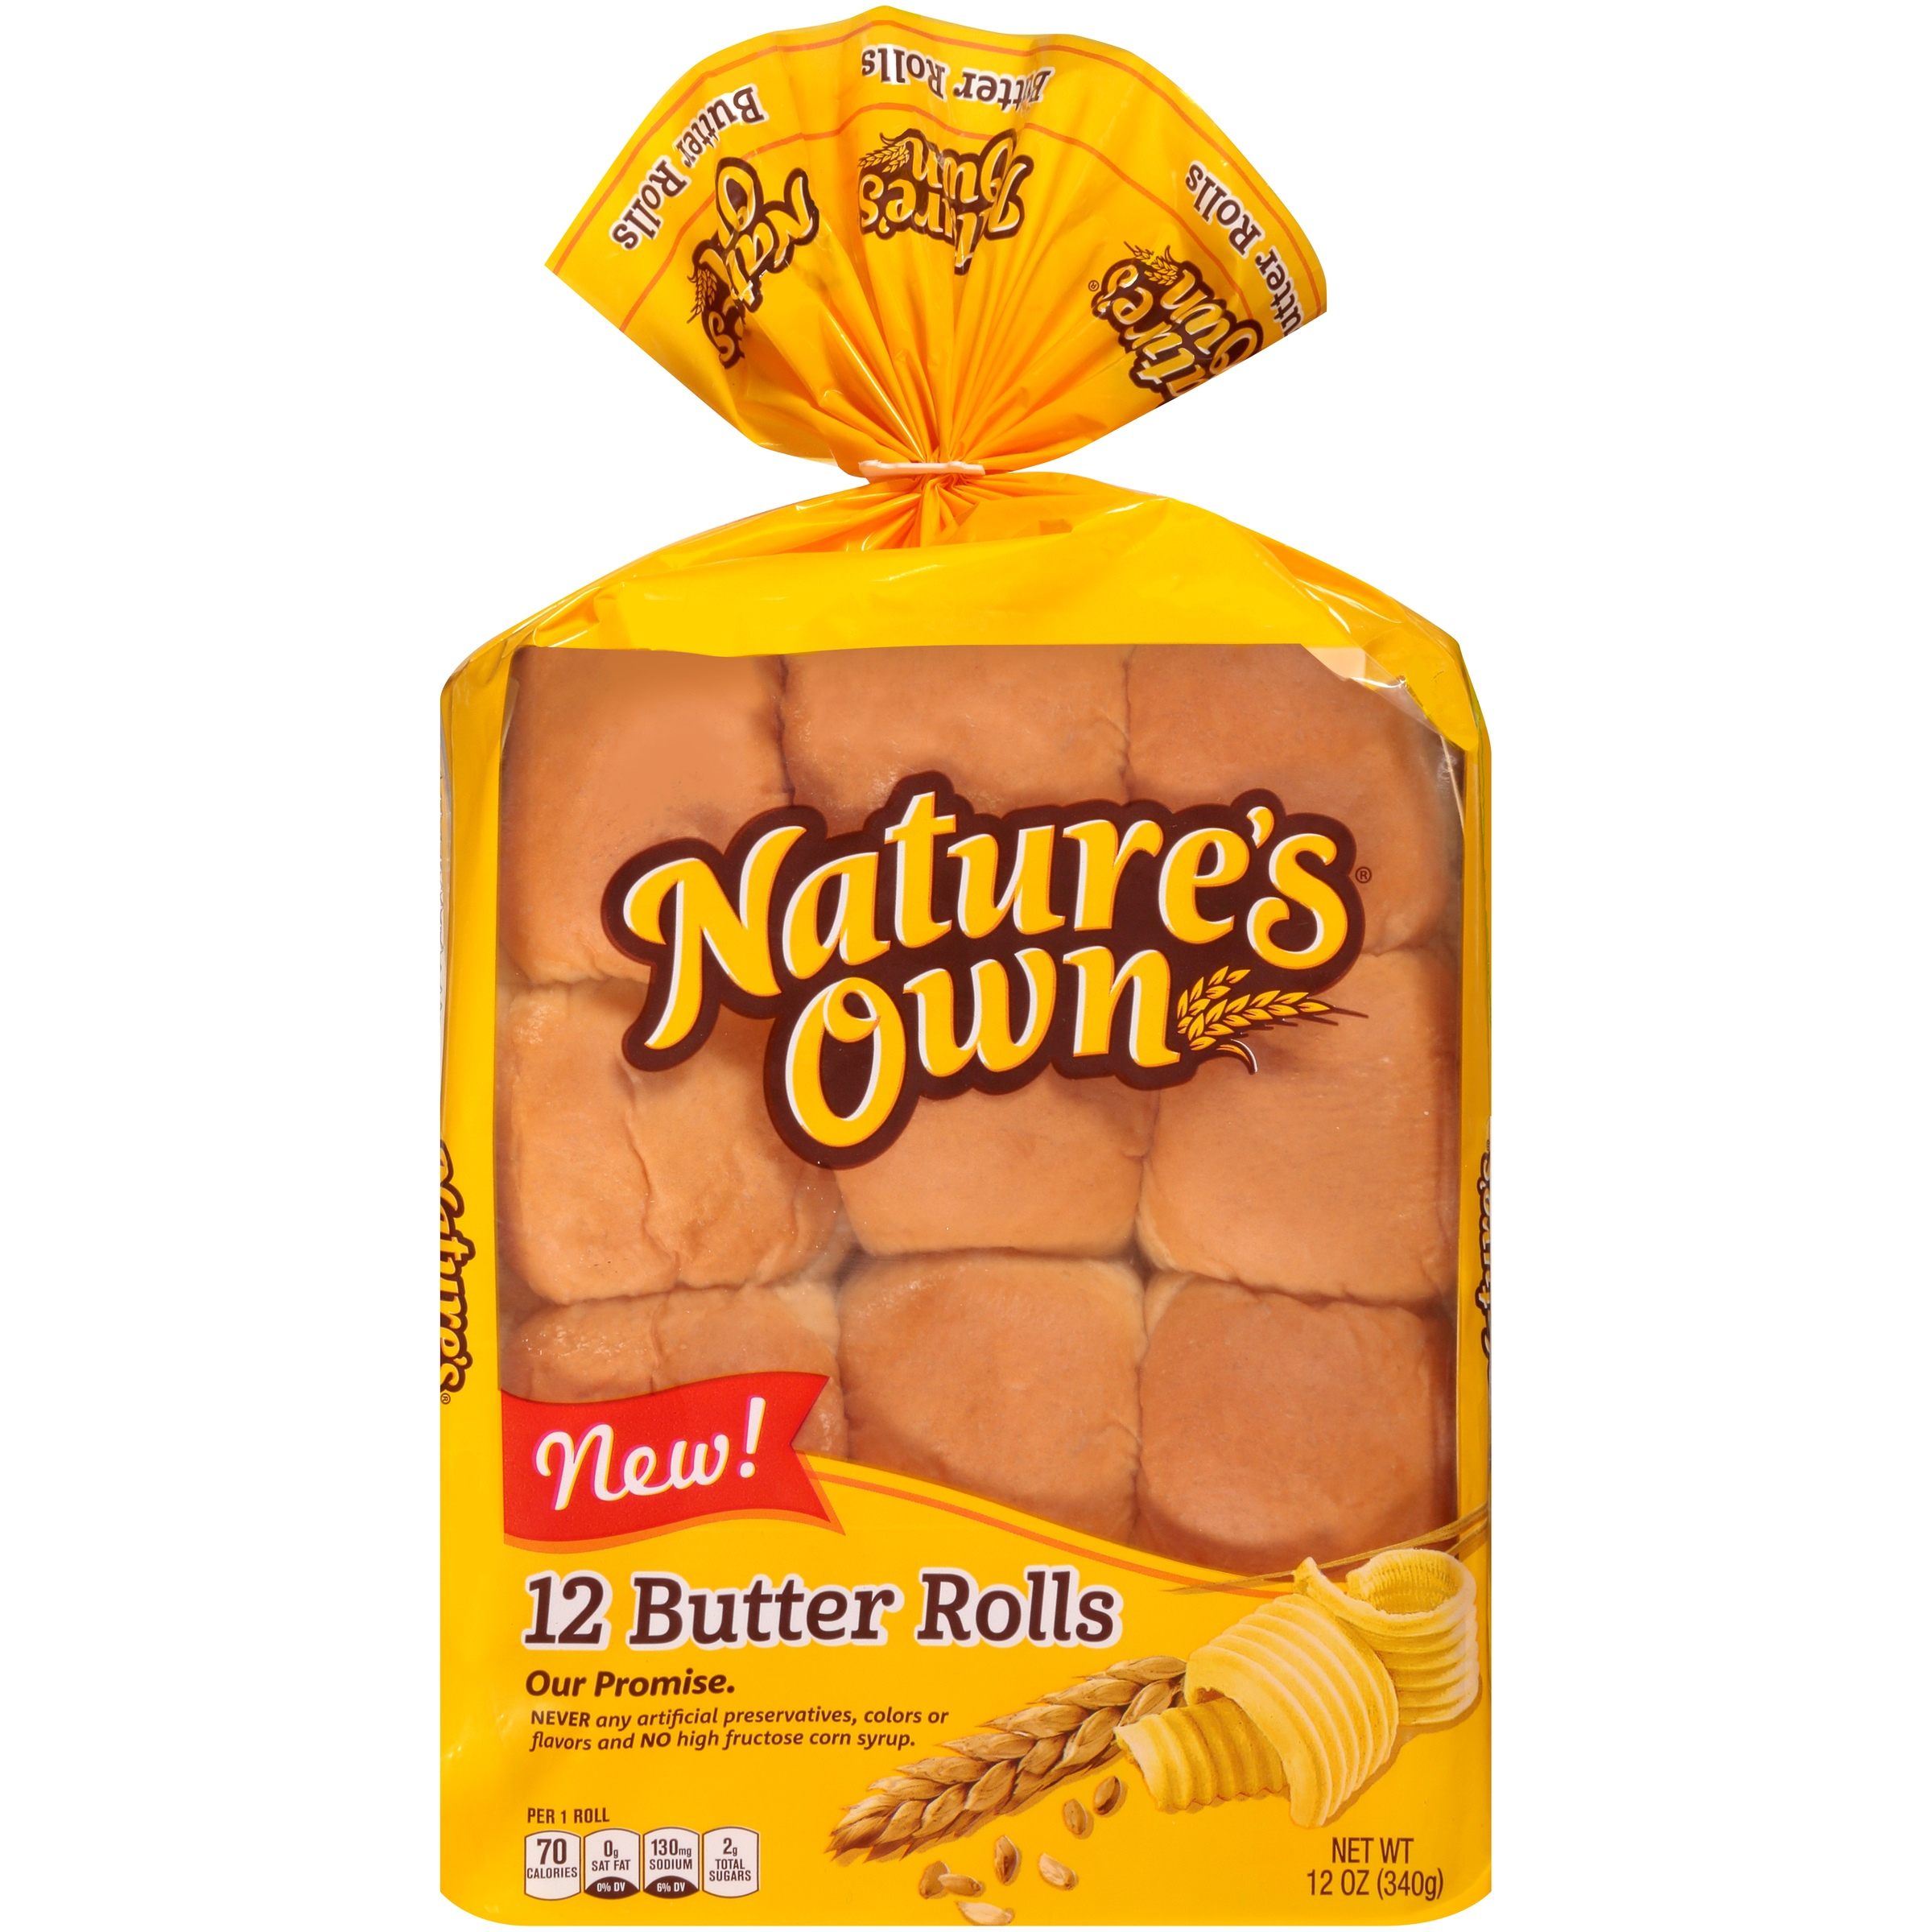 Nature's Own® Butter Rolls 12 ct Bag